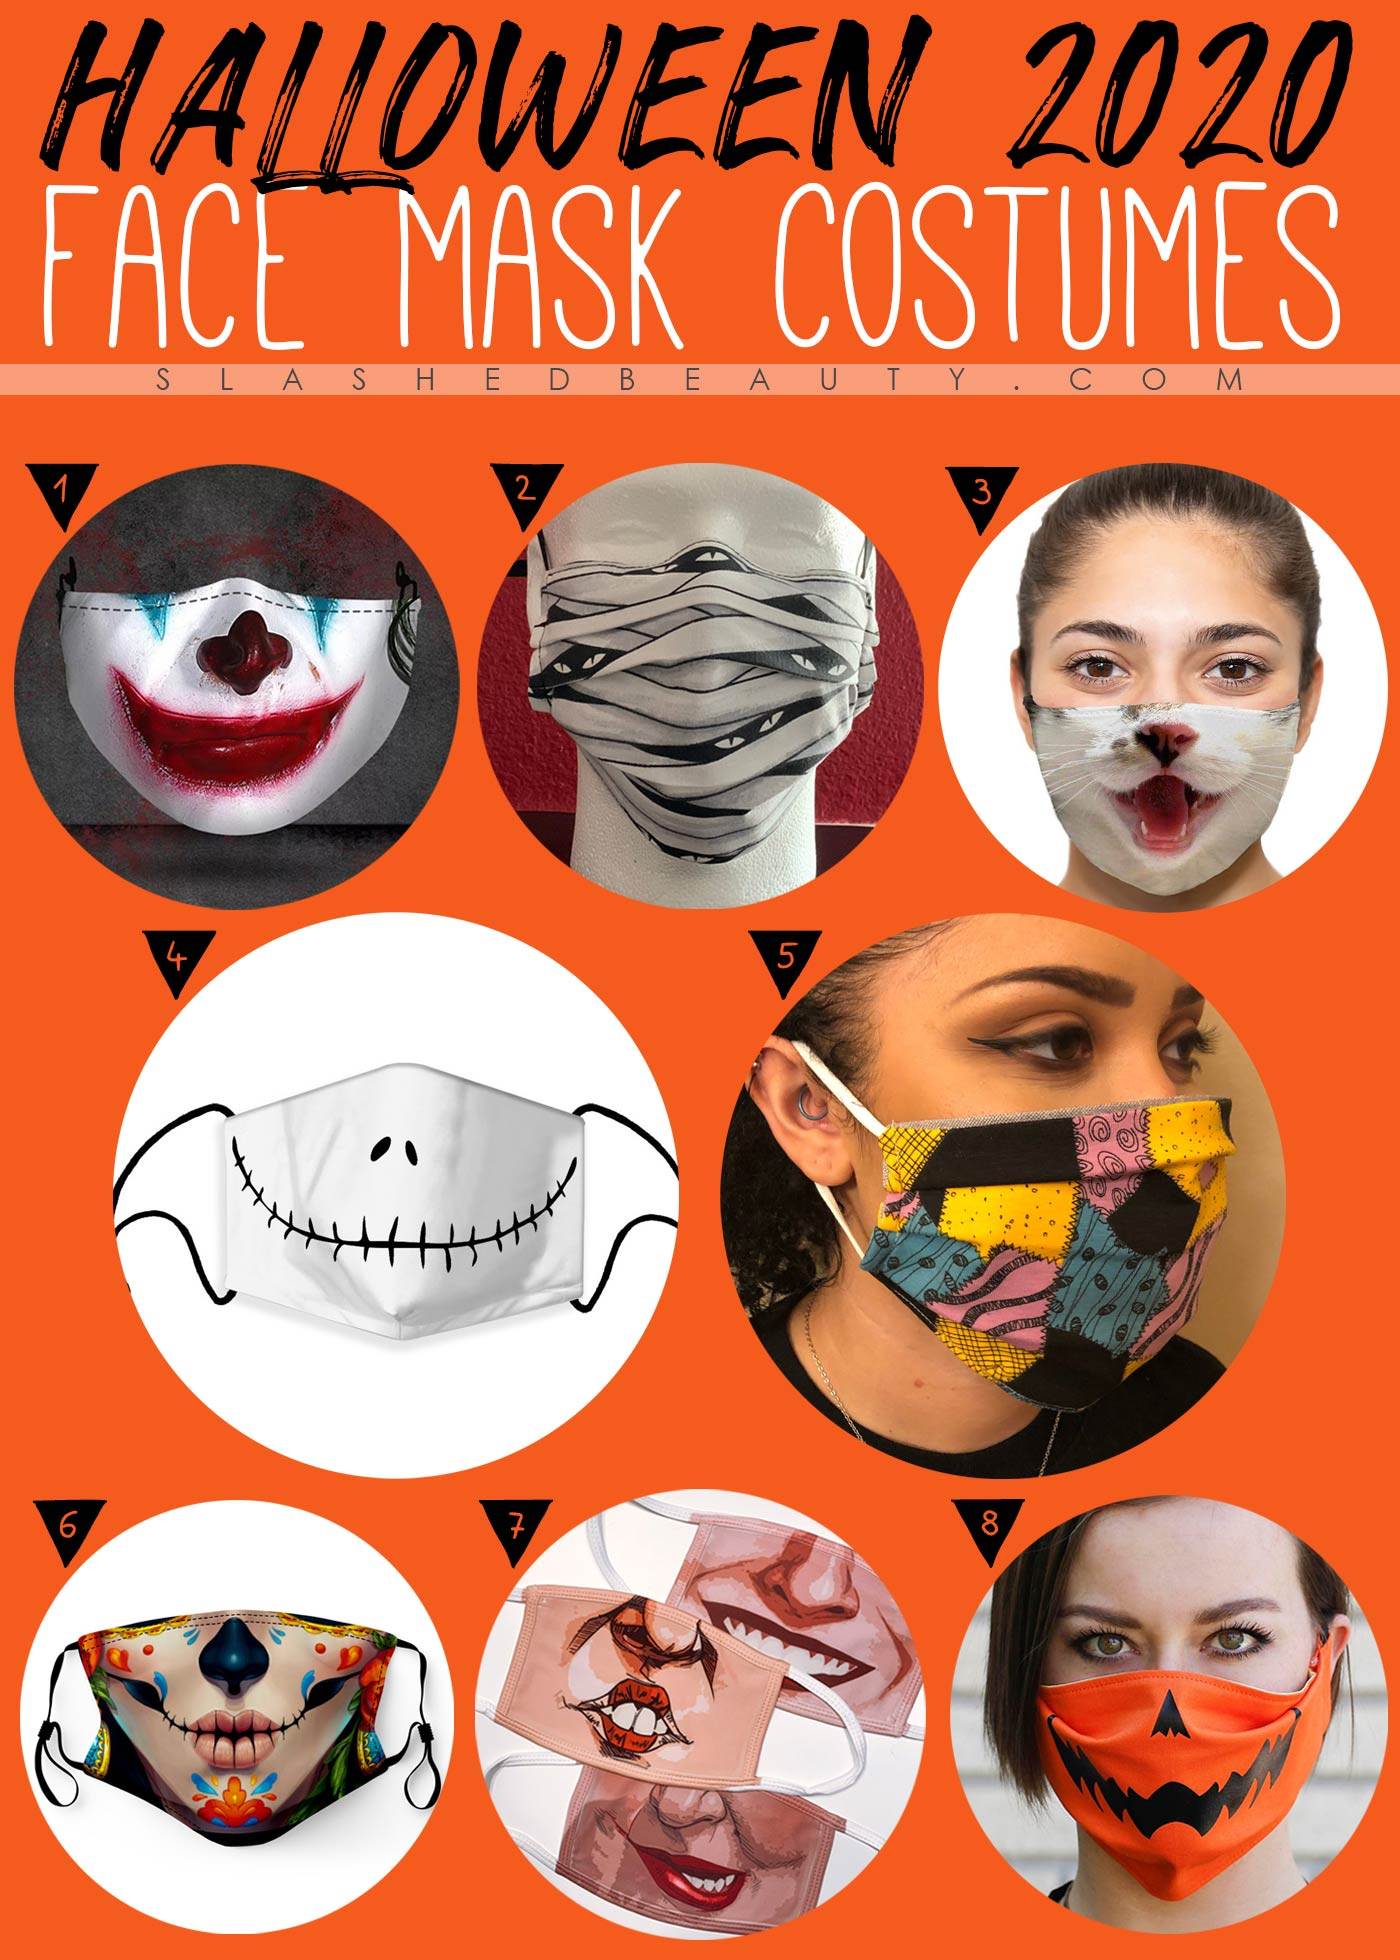 8 Halloween Face Mask Costumes from Etsy | Halloween Costumes with Masks | Slashed Beauty